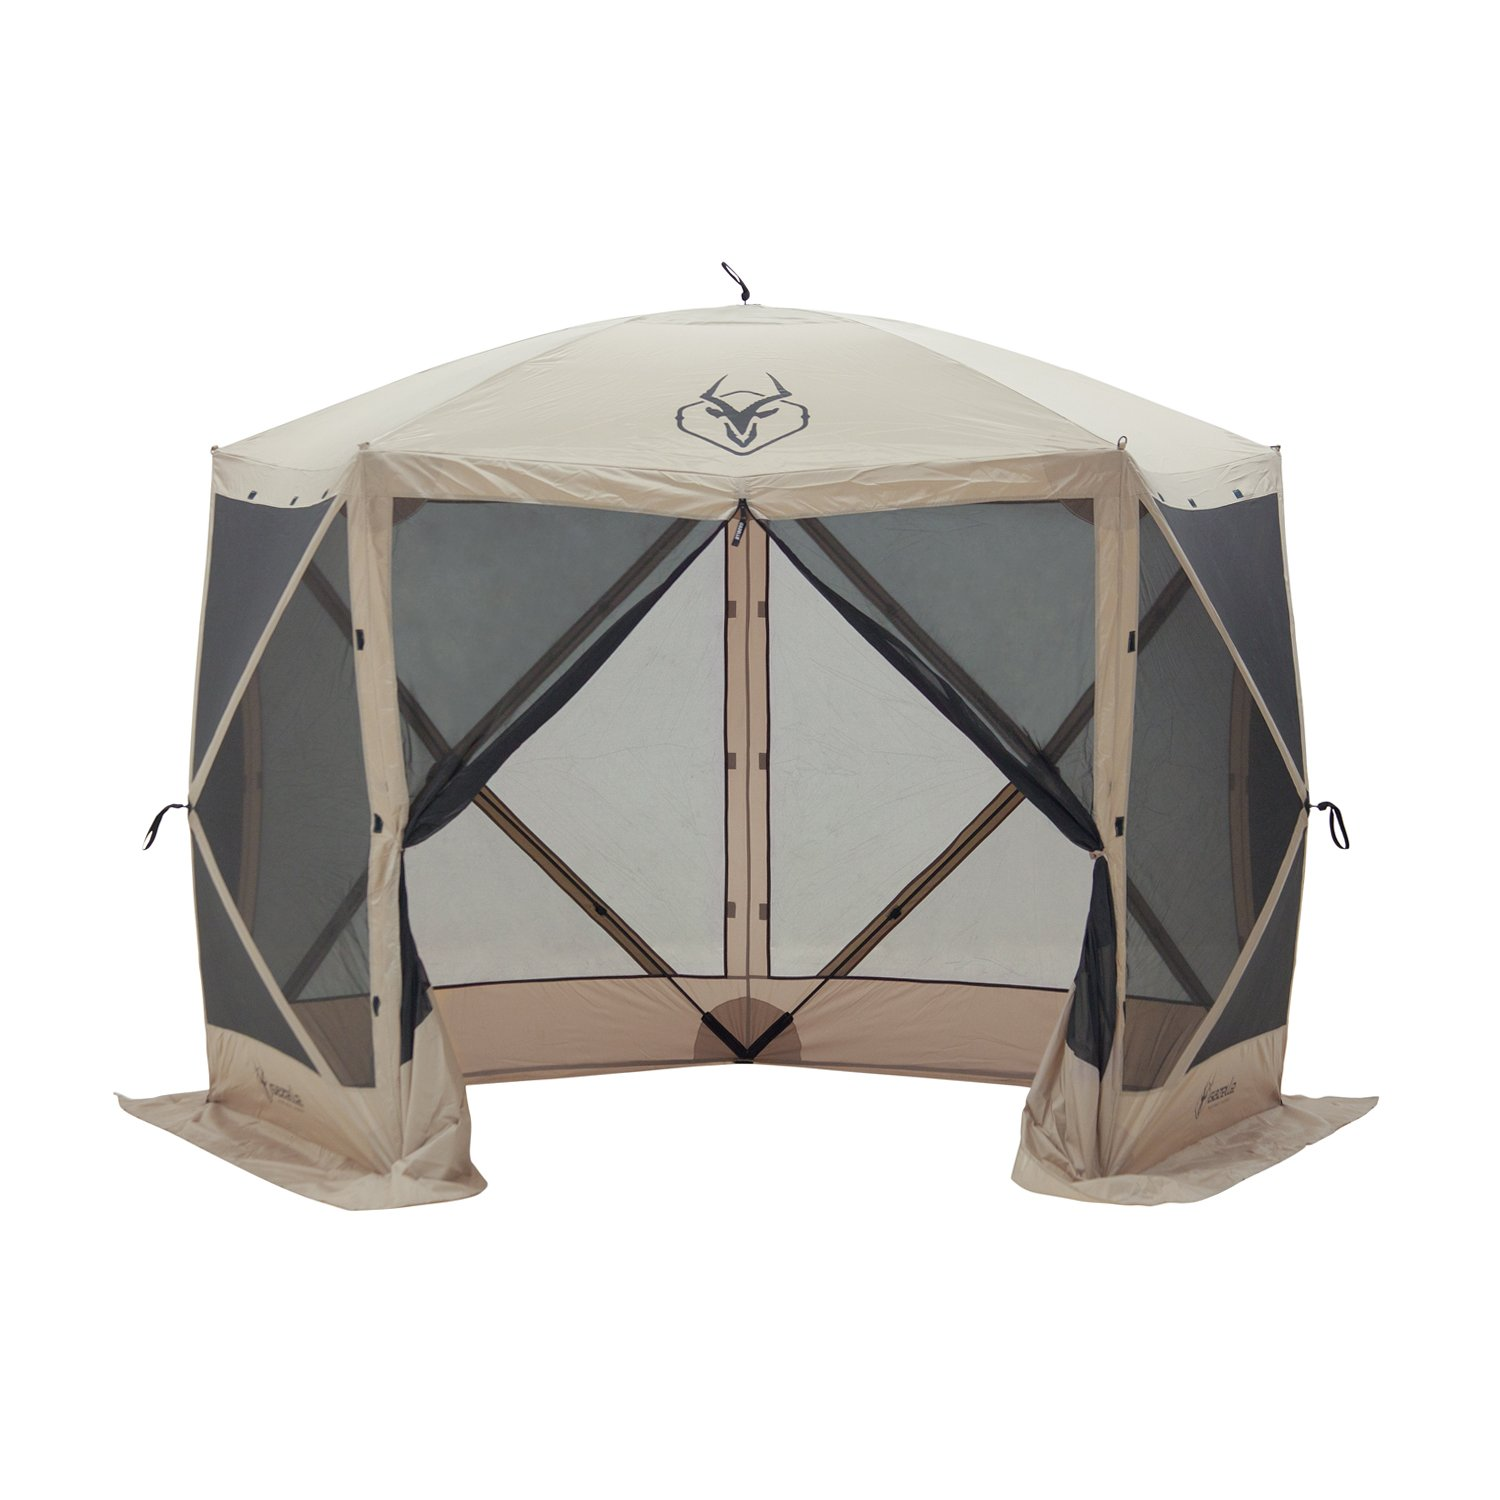 Gazelle Tents 25500 G5 Pop-Up Portable 5-Sided Hub Gazebo/Screen Tent, Easy Instant Set Up in 60 Seconds by Gazelle Tents